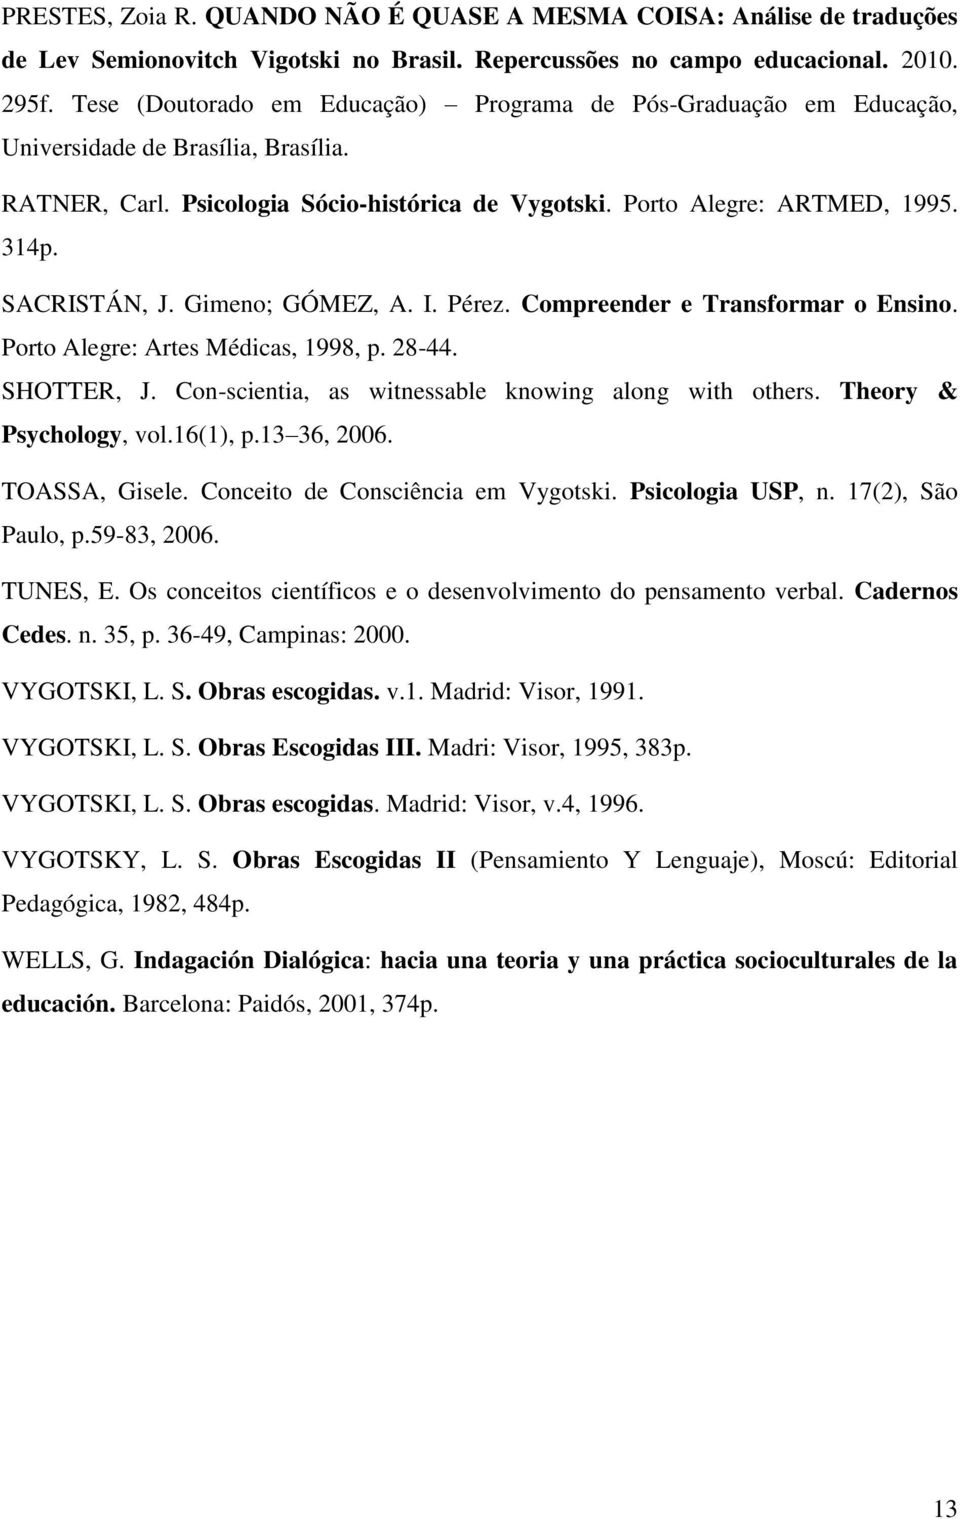 SACRISTÁN, J. Gimeno; GÓMEZ, A. I. Pérez. Compreender e Transformar o Ensino. Porto Alegre: Artes Médicas, 1998, p. 28-44. SHOTTER, J. Con-scientia, as witnessable knowing along with others.